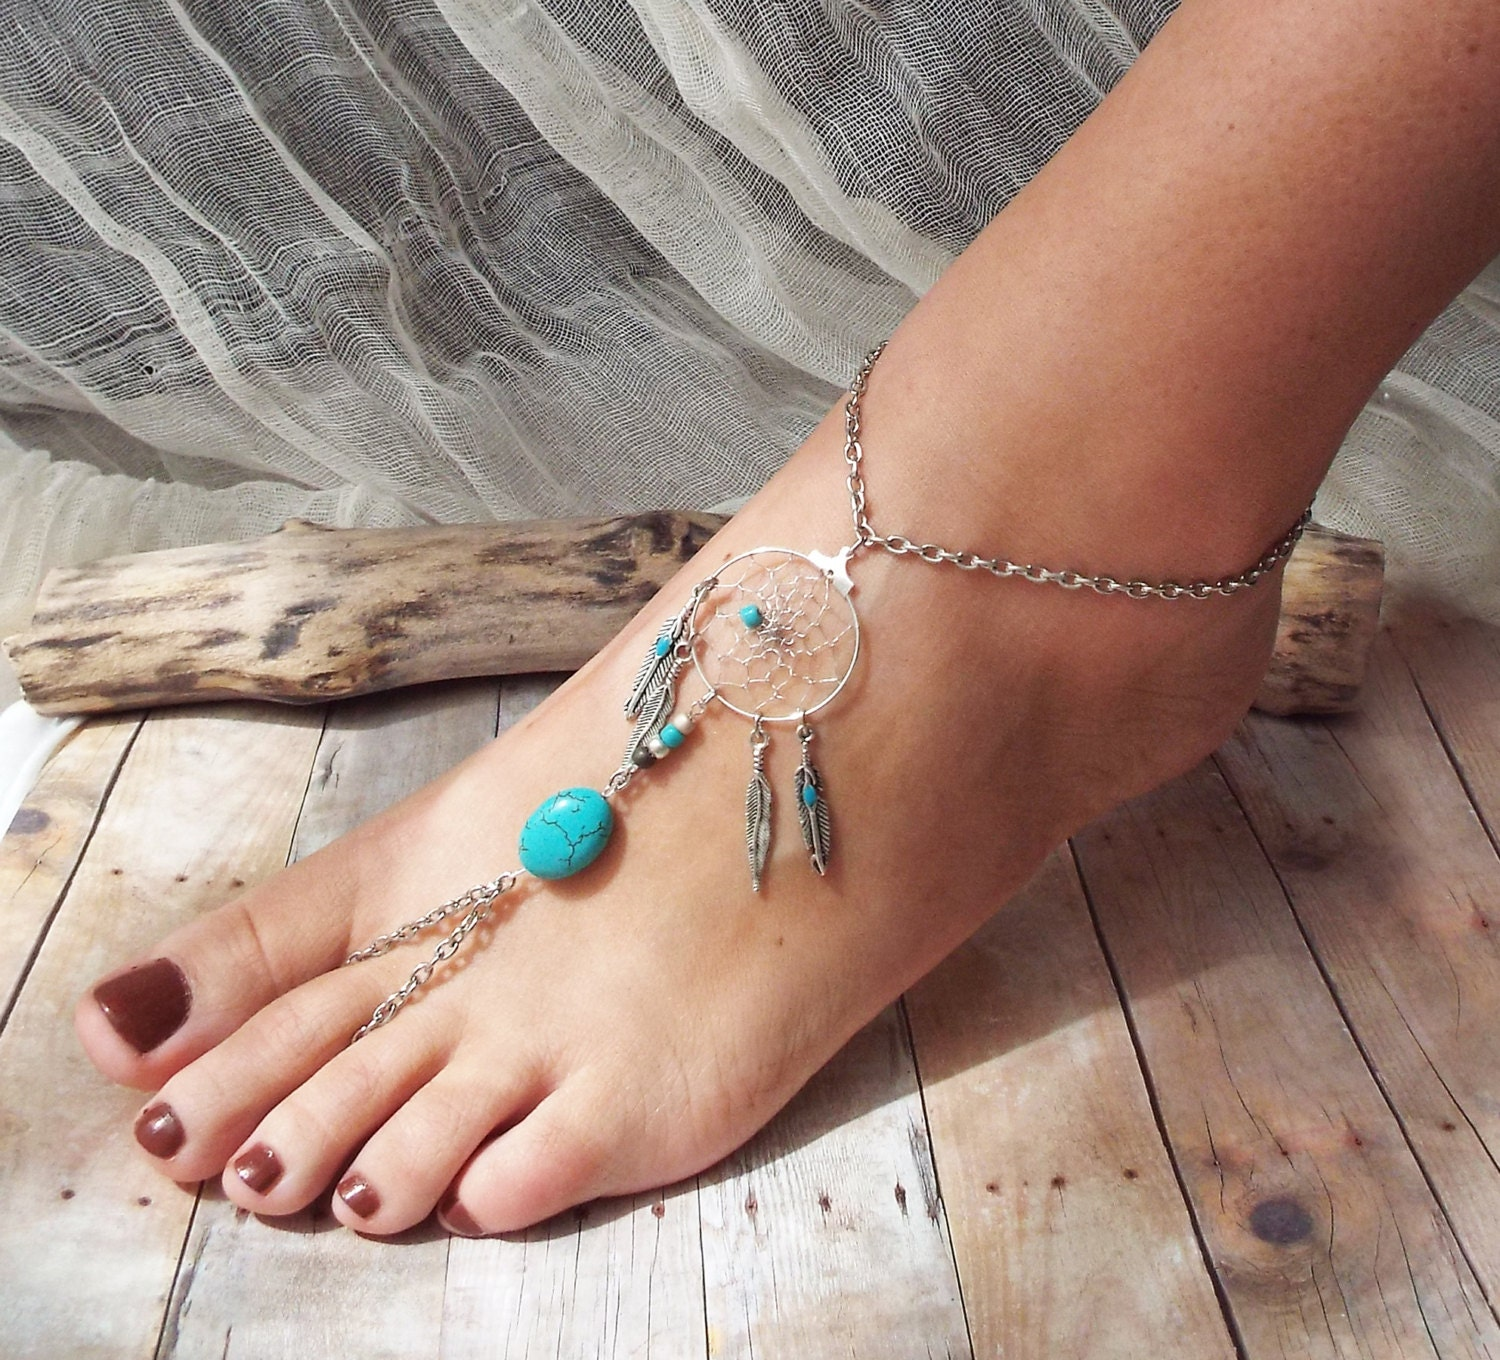 info catcher dreamcatcher il websiteformore dream etsy anklet